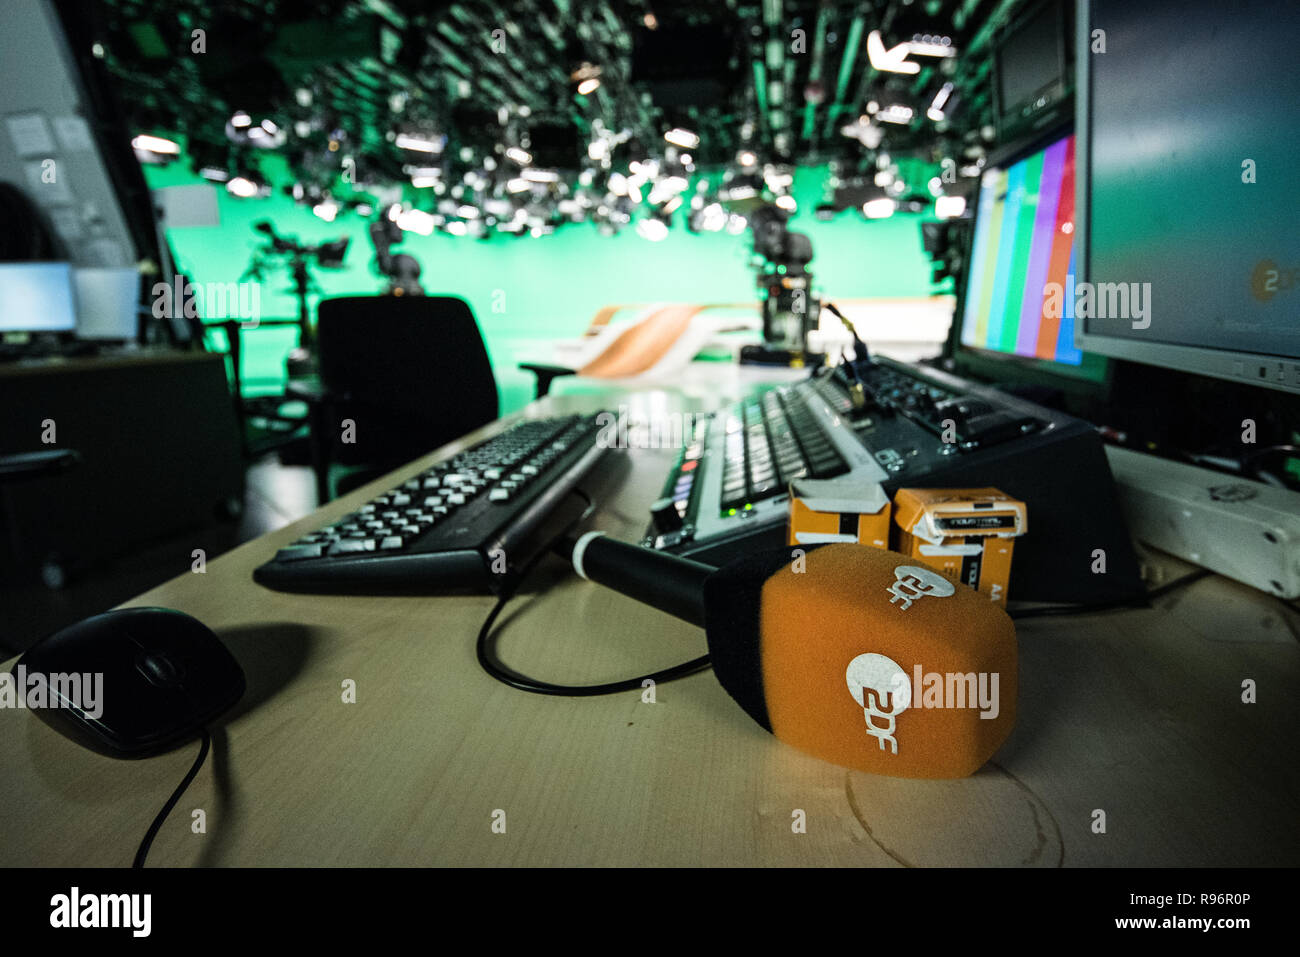 """Mainz, Germany. 31st Aug, 2018. A ZDF microphone is on the table before the live broadcast in the """"Green Hell"""". The Second German Television (ZDF) is one of the largest public broadcasters in Europe with its headquarters in Mainz, the capital of Rhineland-Palatinate. Credit: Andreas Arnold/dpa/Alamy Live News Stock Photo"""